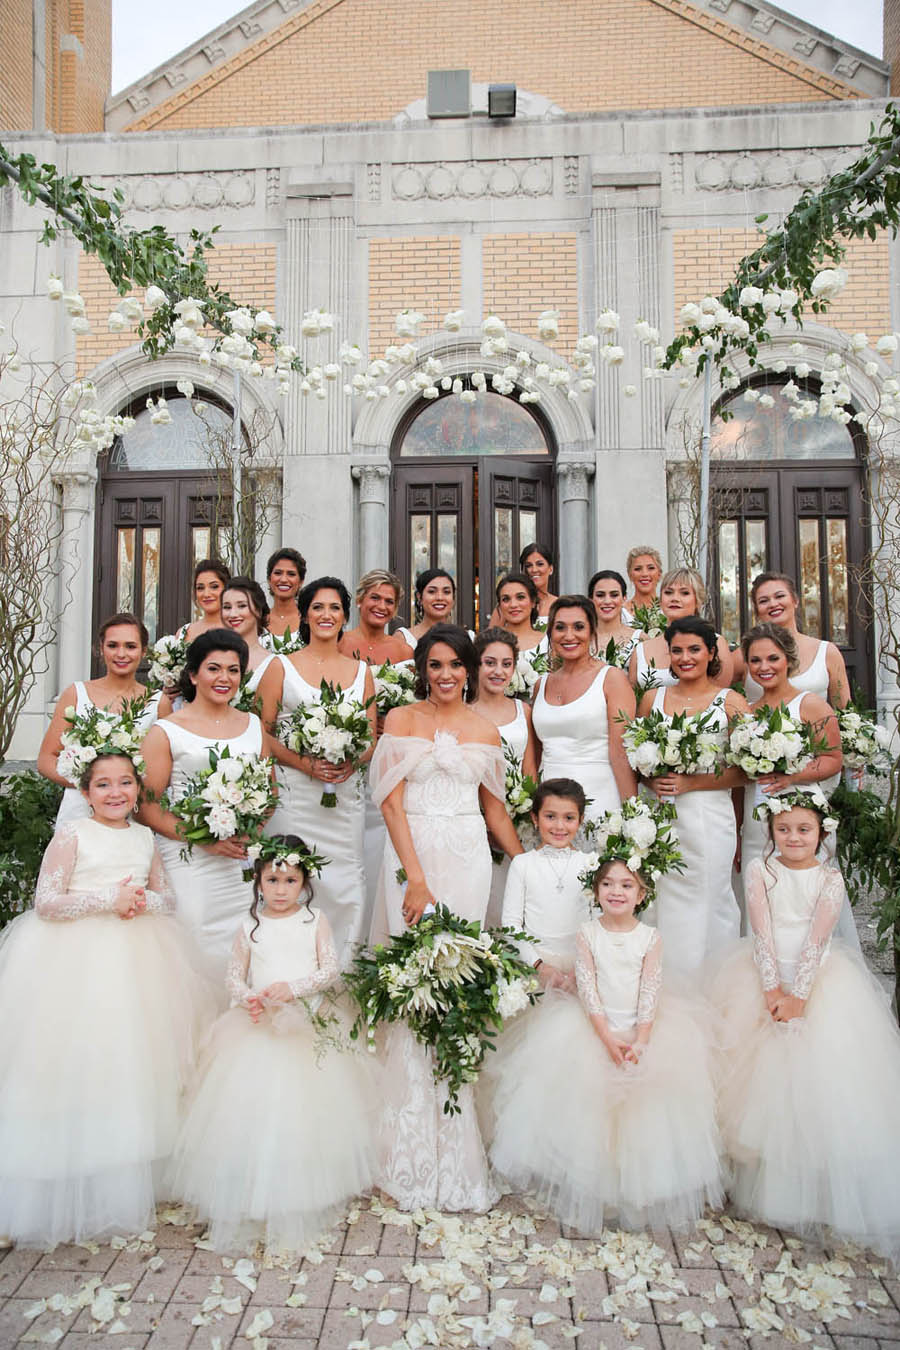 Outdoor Bridal Party Portrait, Bridesmaids in Floorlength White Hayley Paige Bella Bridesmaids Dresses, Flower Girls in Blush Pink Dresses with Layered Skirts, under hanging White Flowers, Greenery, and Wild Branch Arches   Tarpon Springs Wedding Venue St Nicholas Greek Orthodox Church